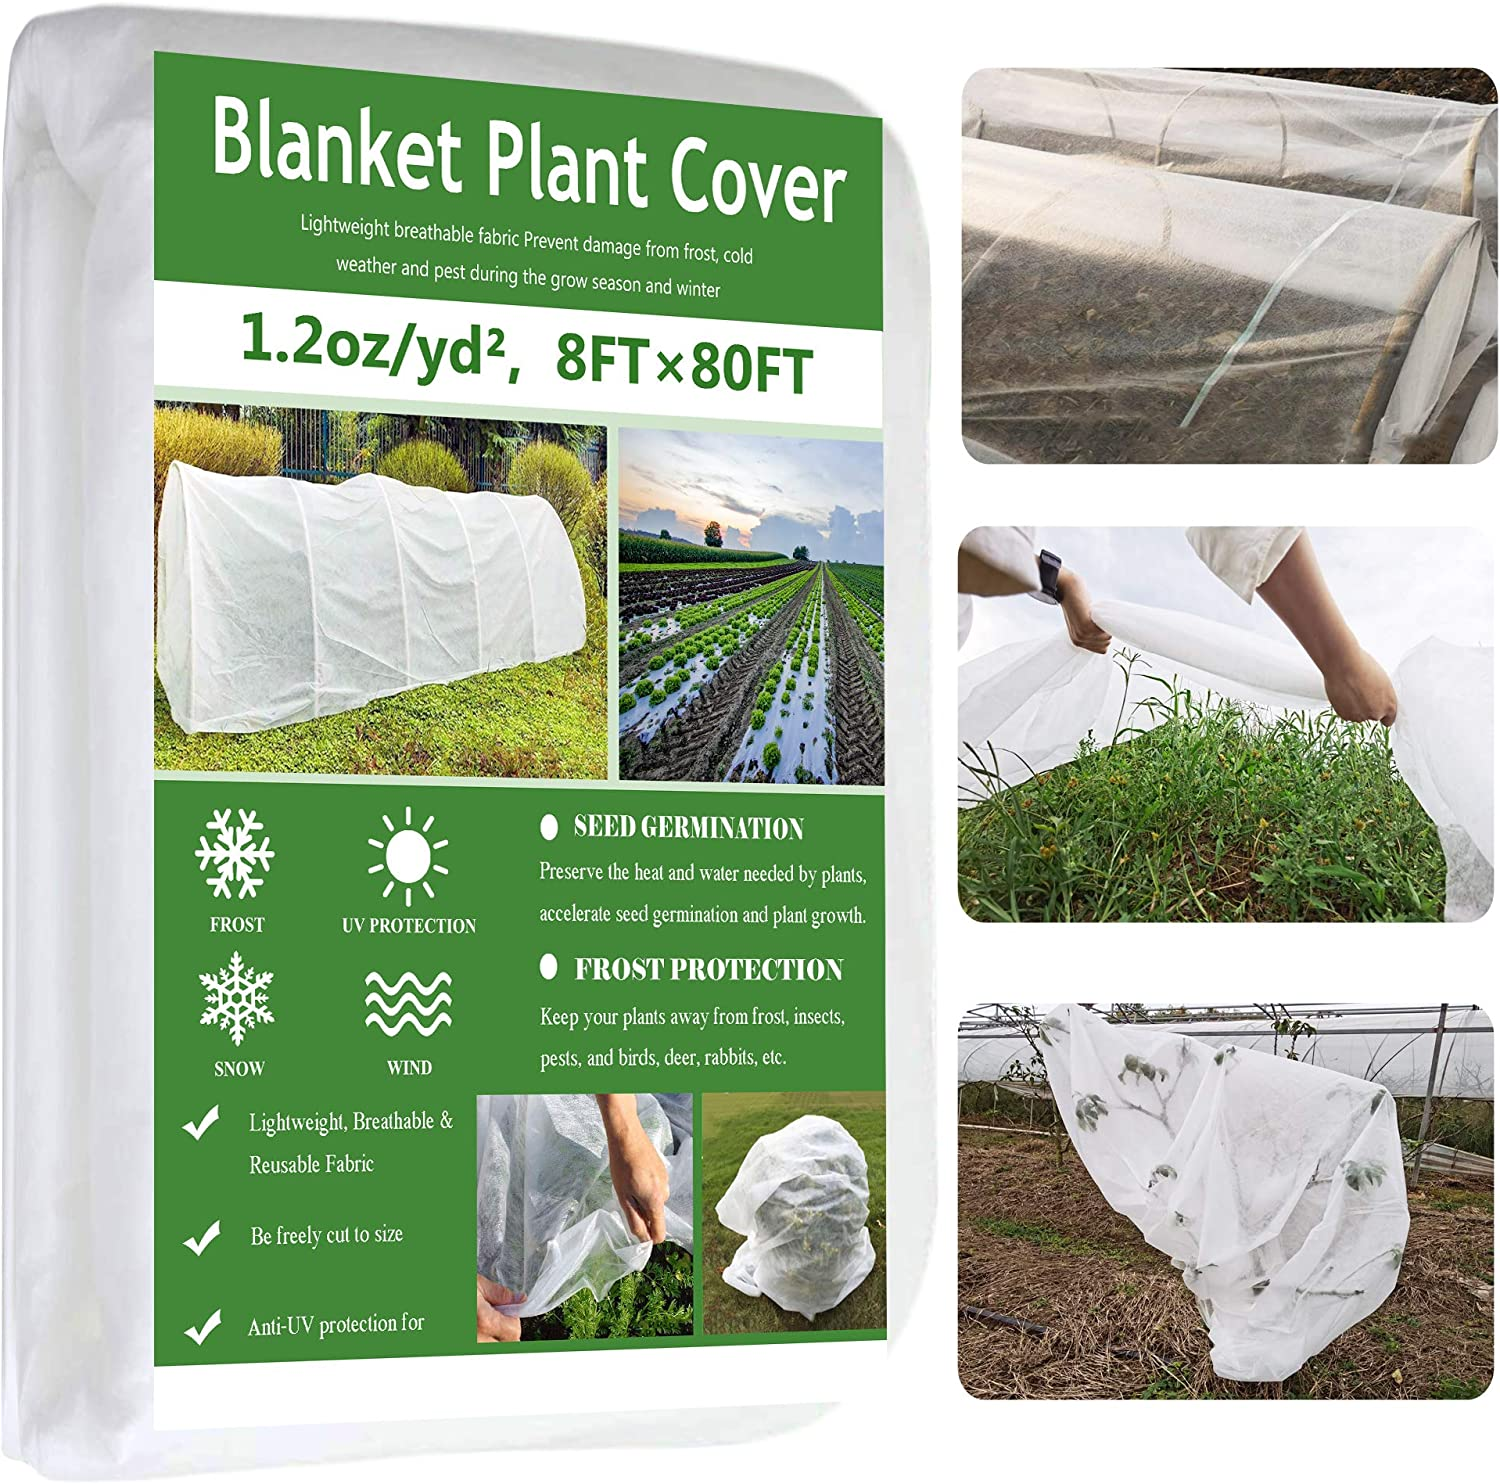 Garden EXPERT Plant Covers Freeze Protection Floating Row Cover Thickened 1.2oz Fabric Frost Cloth Plant Blanket for Plants & Vegetables in Winter(8FTx80FT)